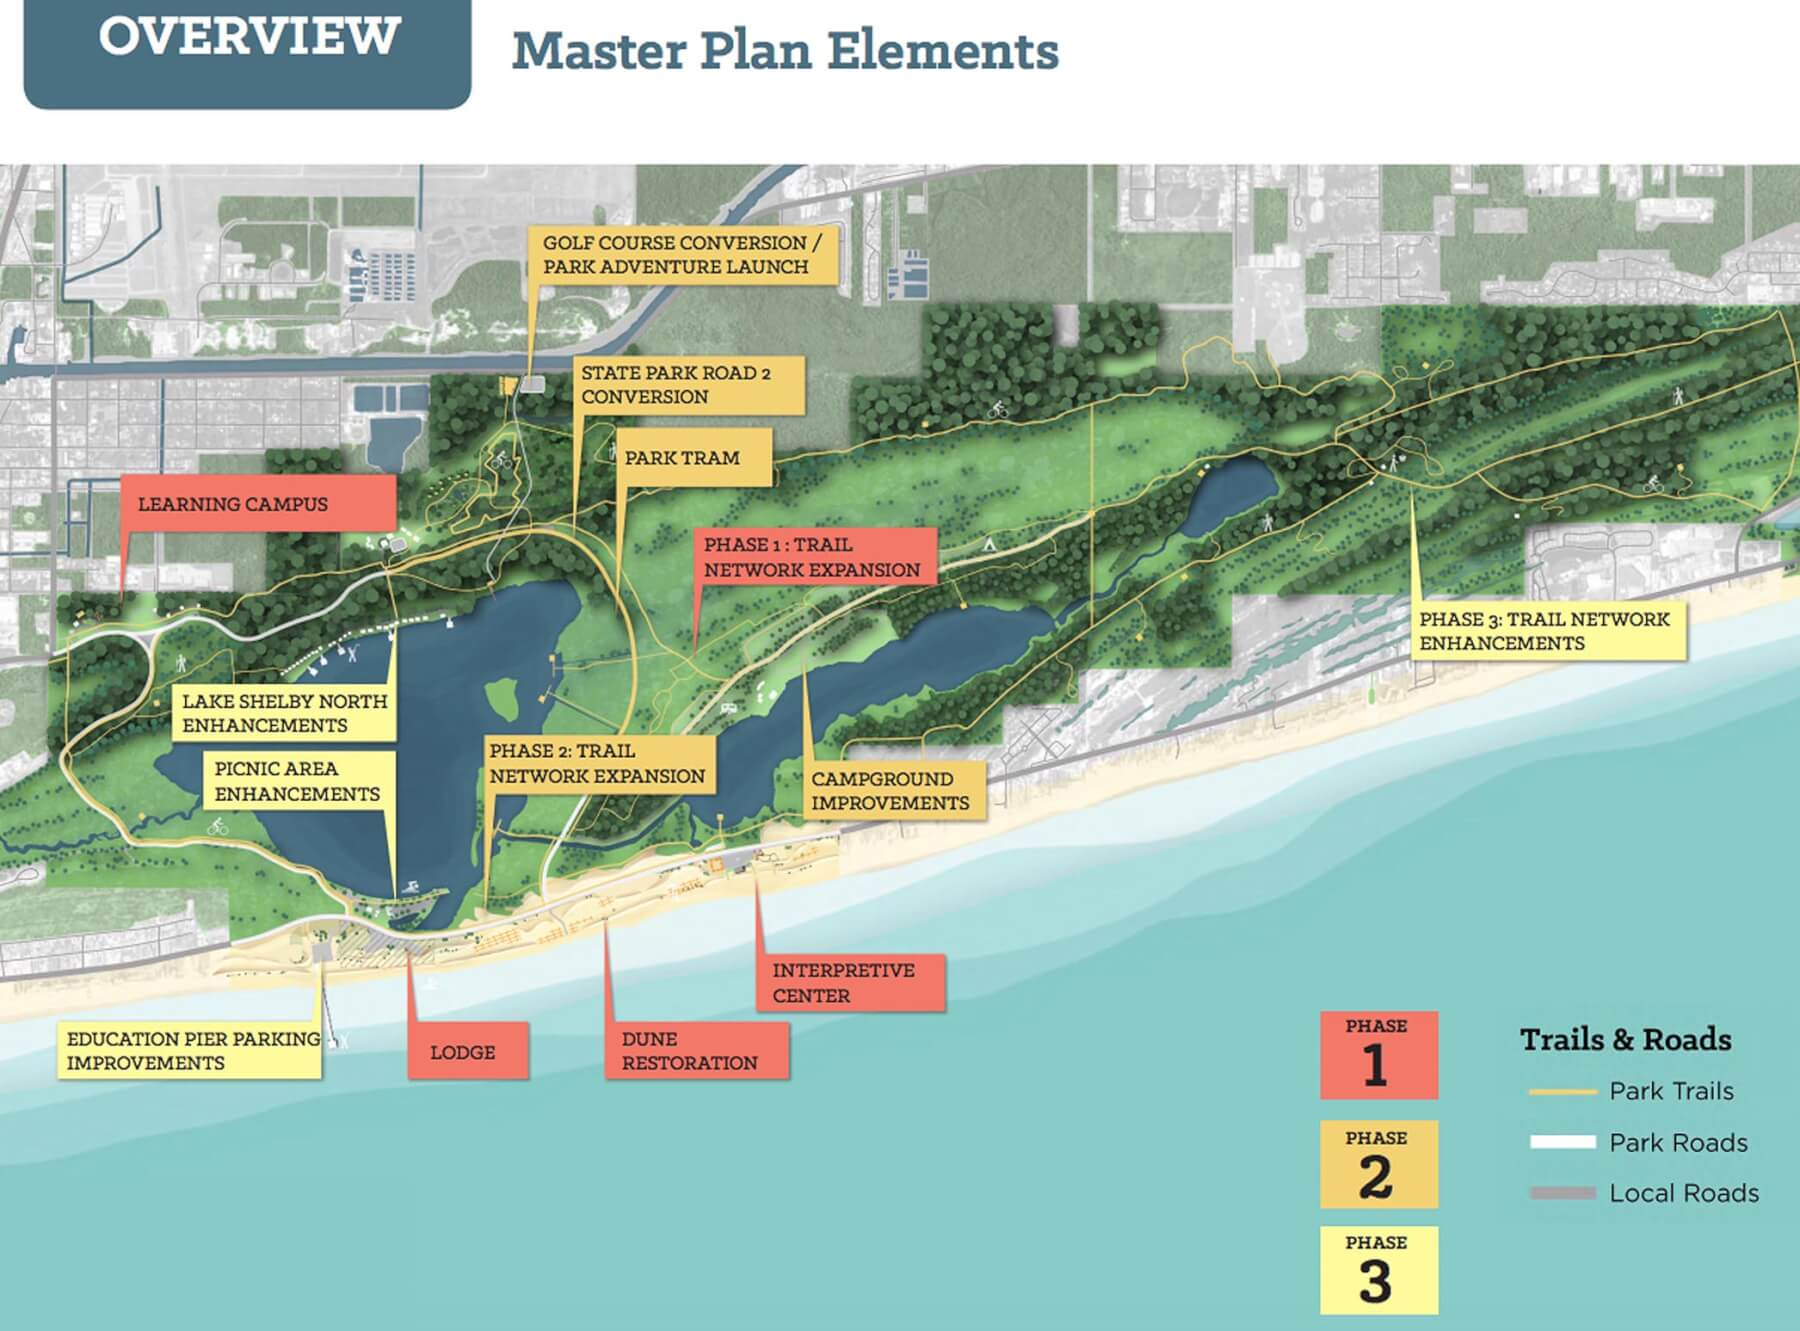 Master plan unveiled for Gulf State Park enhancements